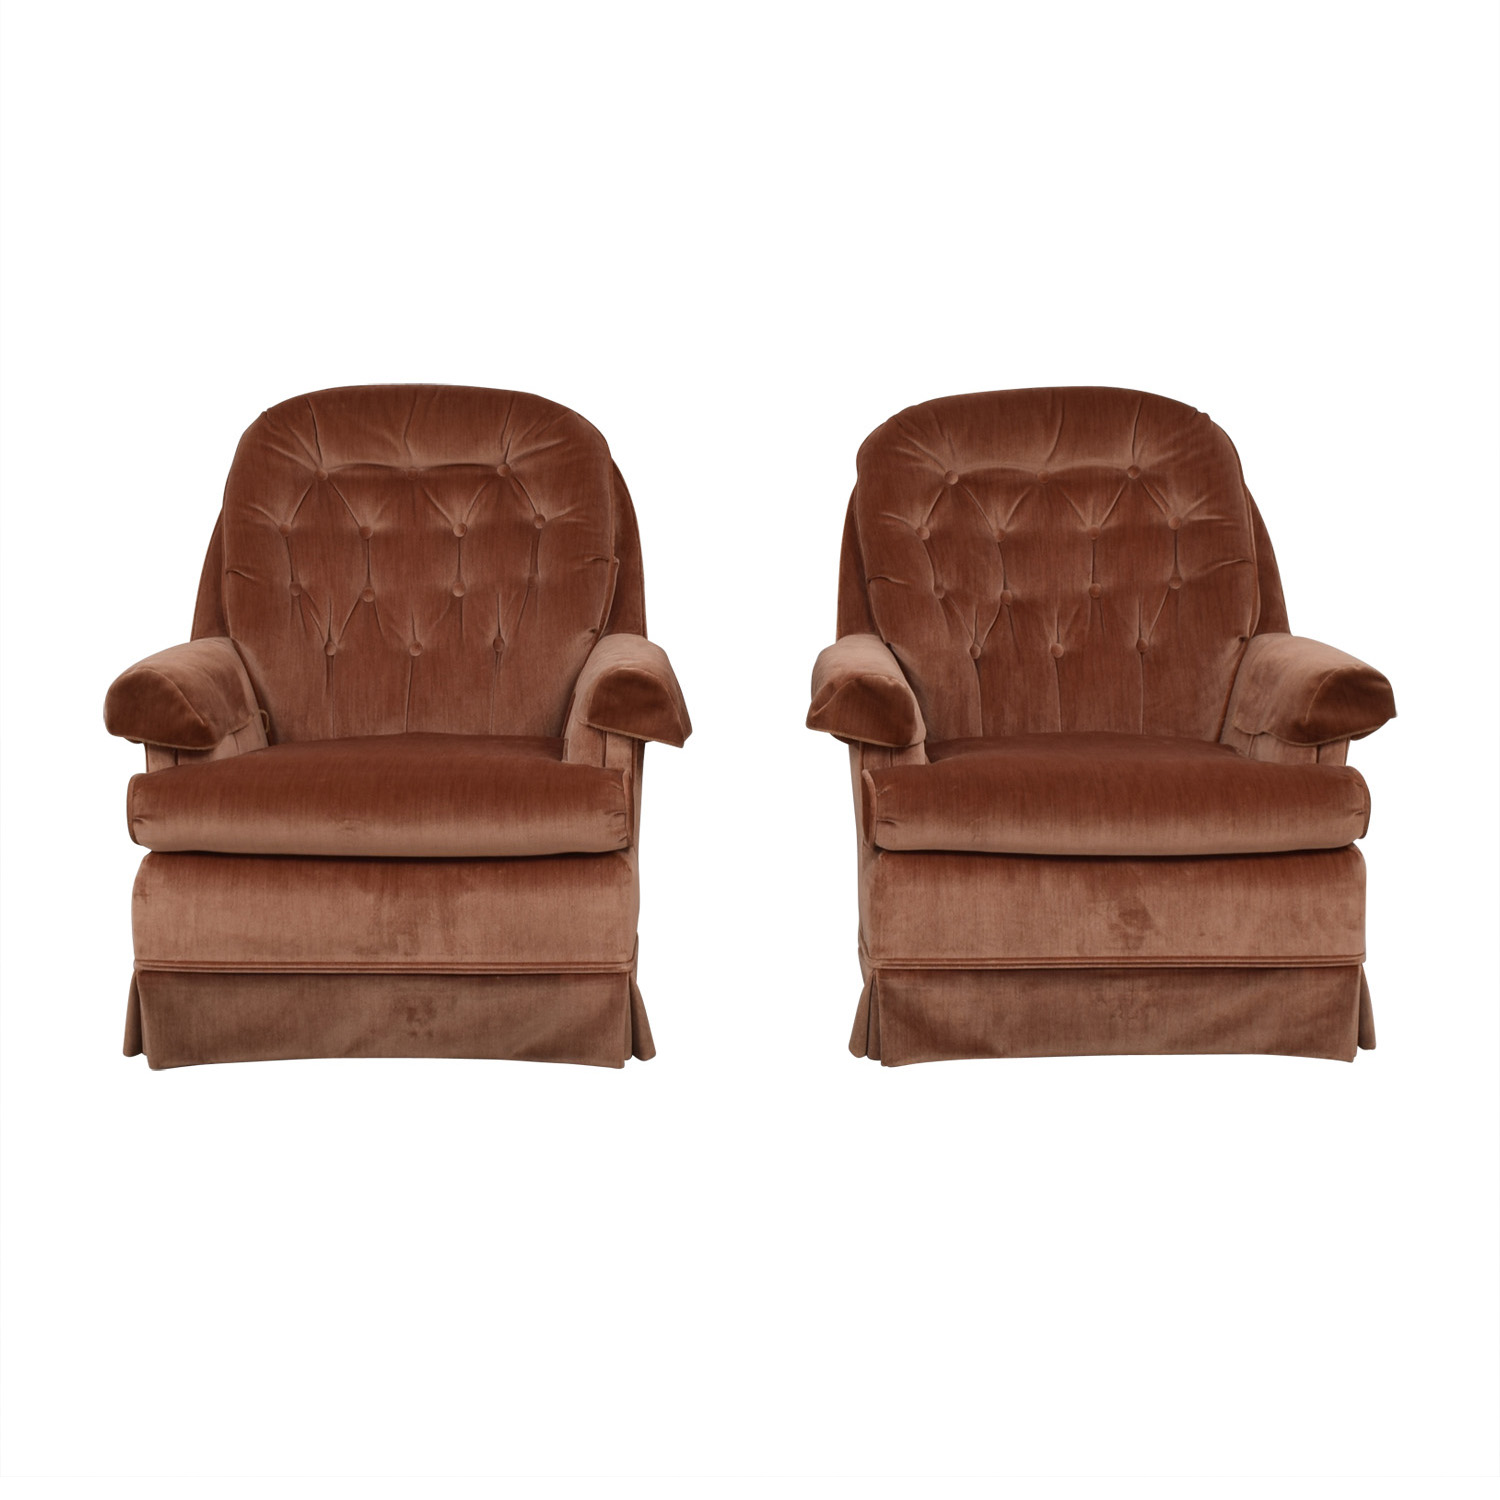 Broyhill Furniture Broyhill Tan Tufted Arm Accent Chairs price